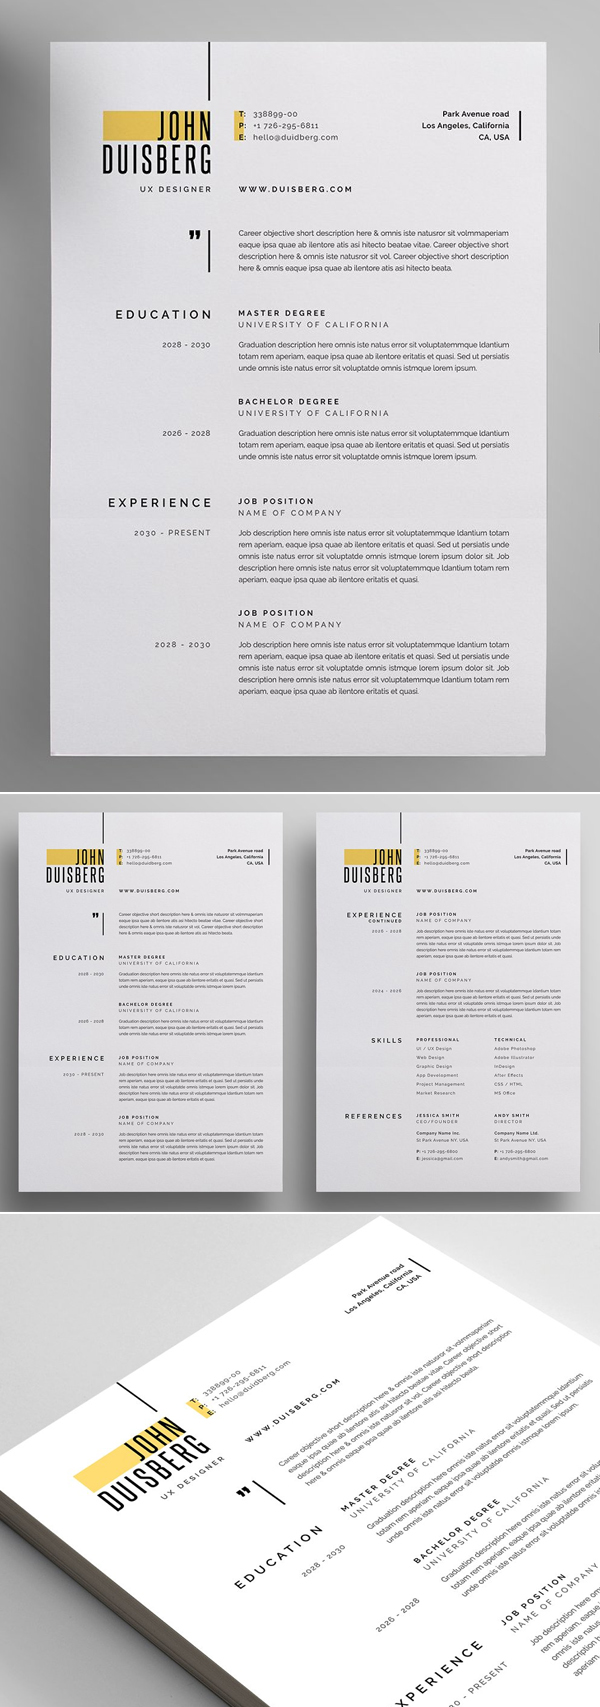 Simple Resume / CV Design